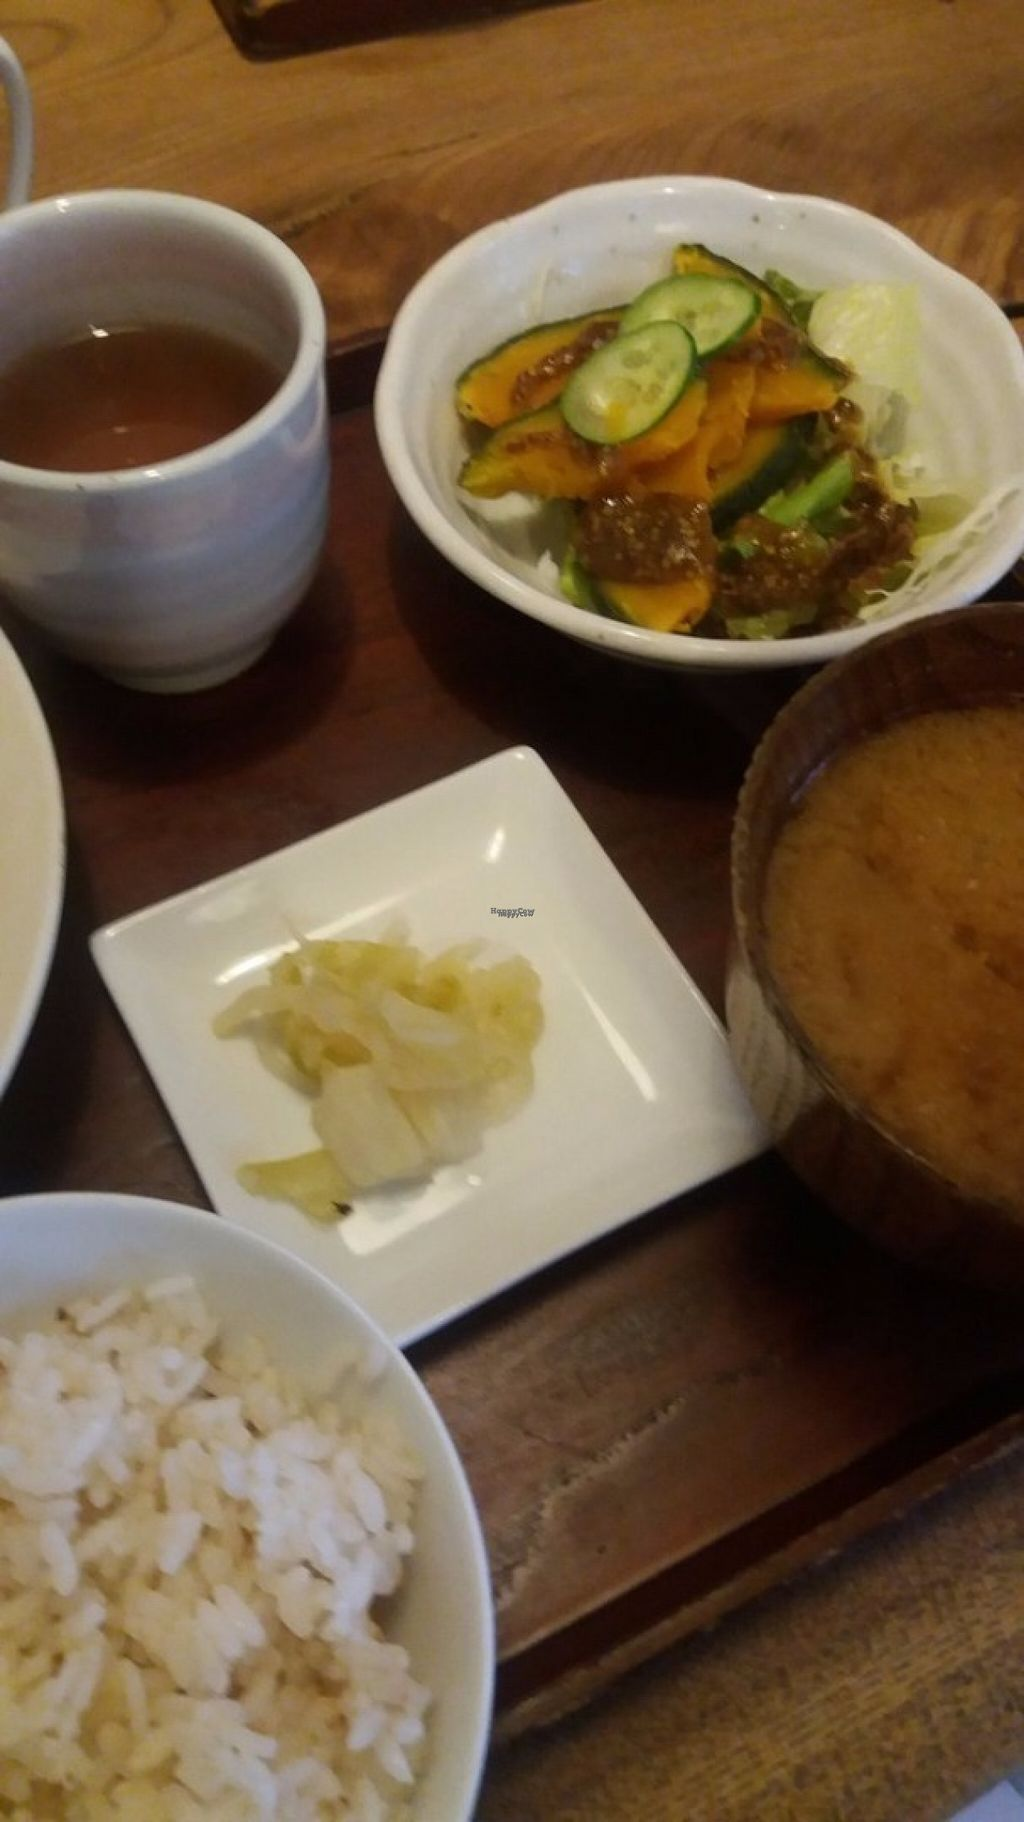 "Photo of Biotei  by <a href=""/members/profile/saffron_summer"">saffron_summer</a> <br/>Salad & miso soup <br/> August 17, 2016  - <a href='/contact/abuse/image/81/169475'>Report</a>"